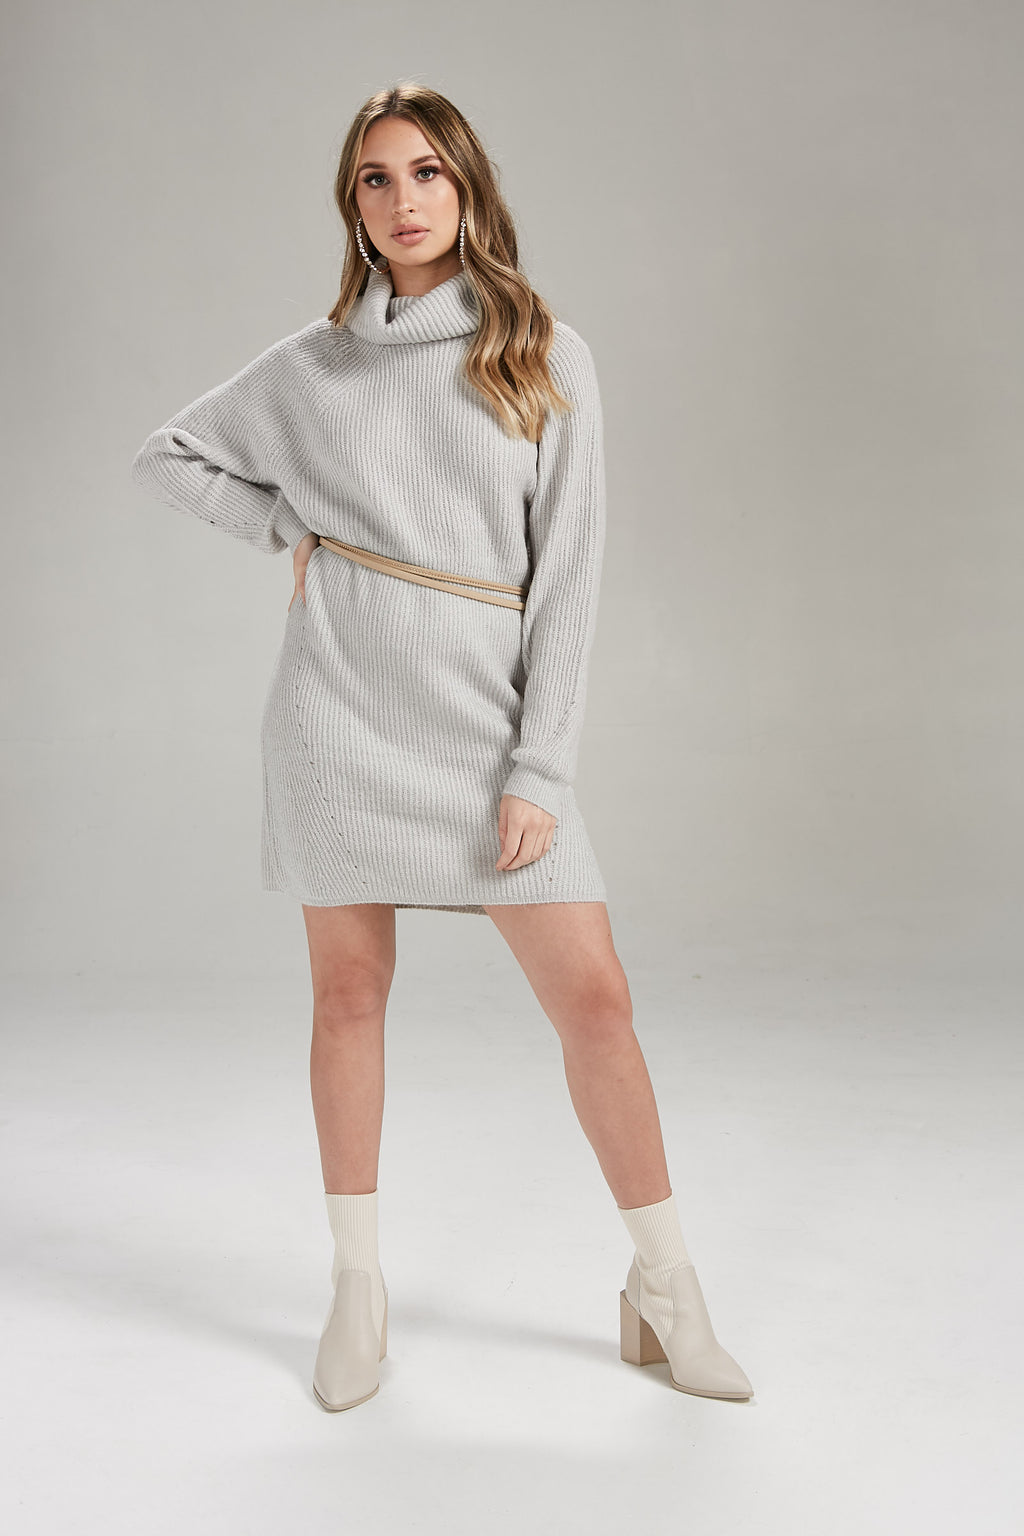 Light As A Feather Knit Sweater Dress